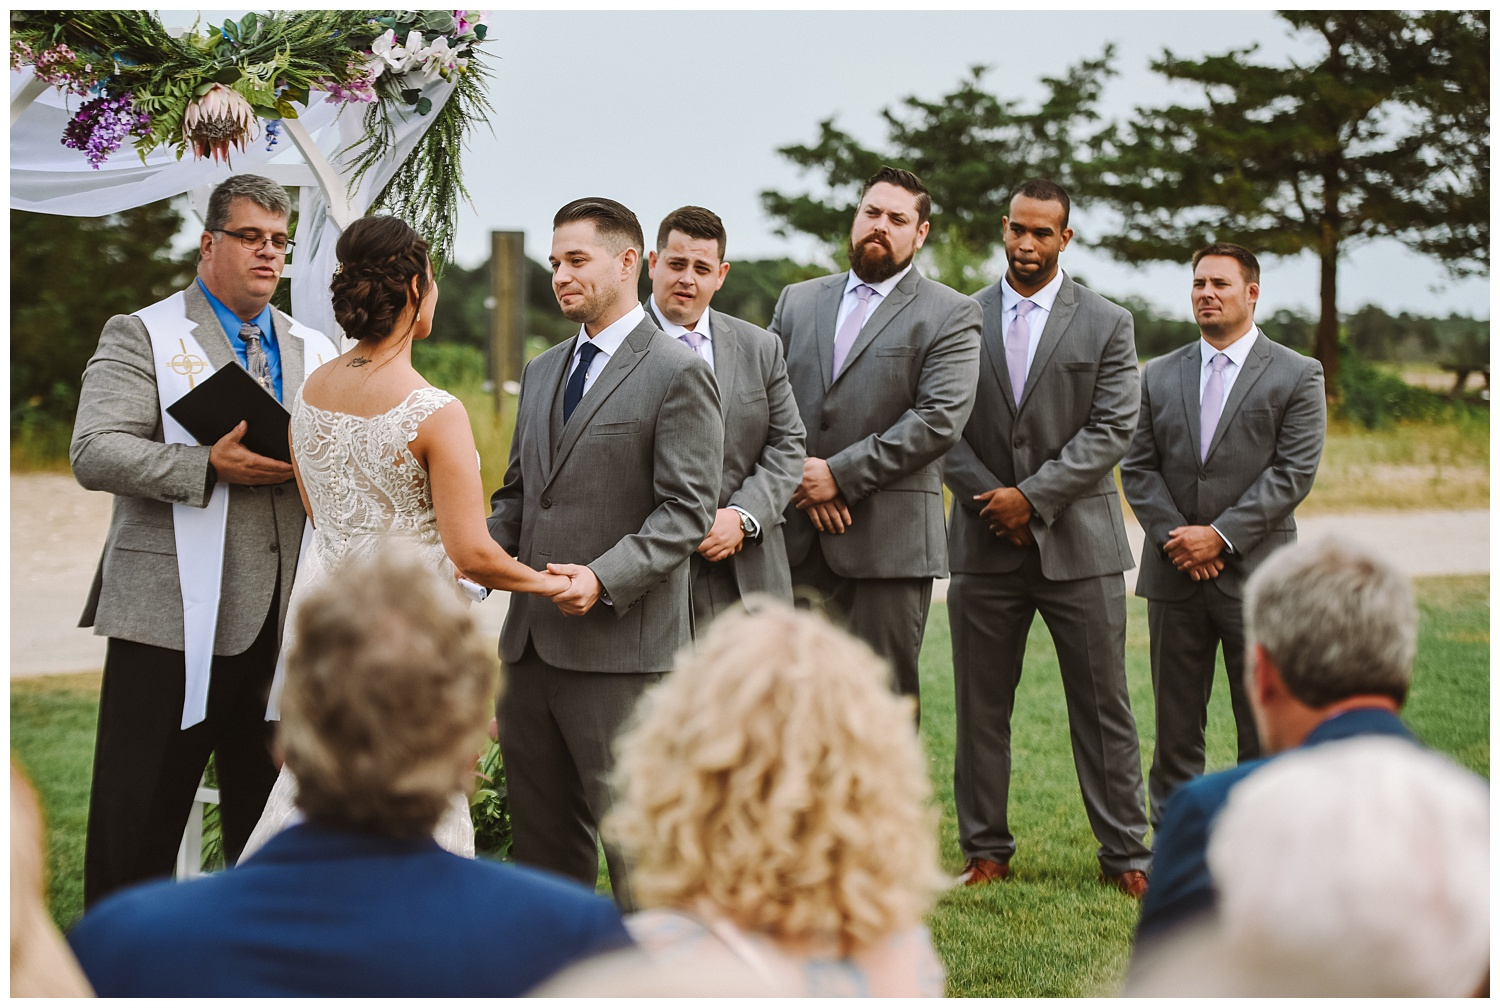 Shining Tides Wedding Mattapoisett Wedding - Photographer91.jpg